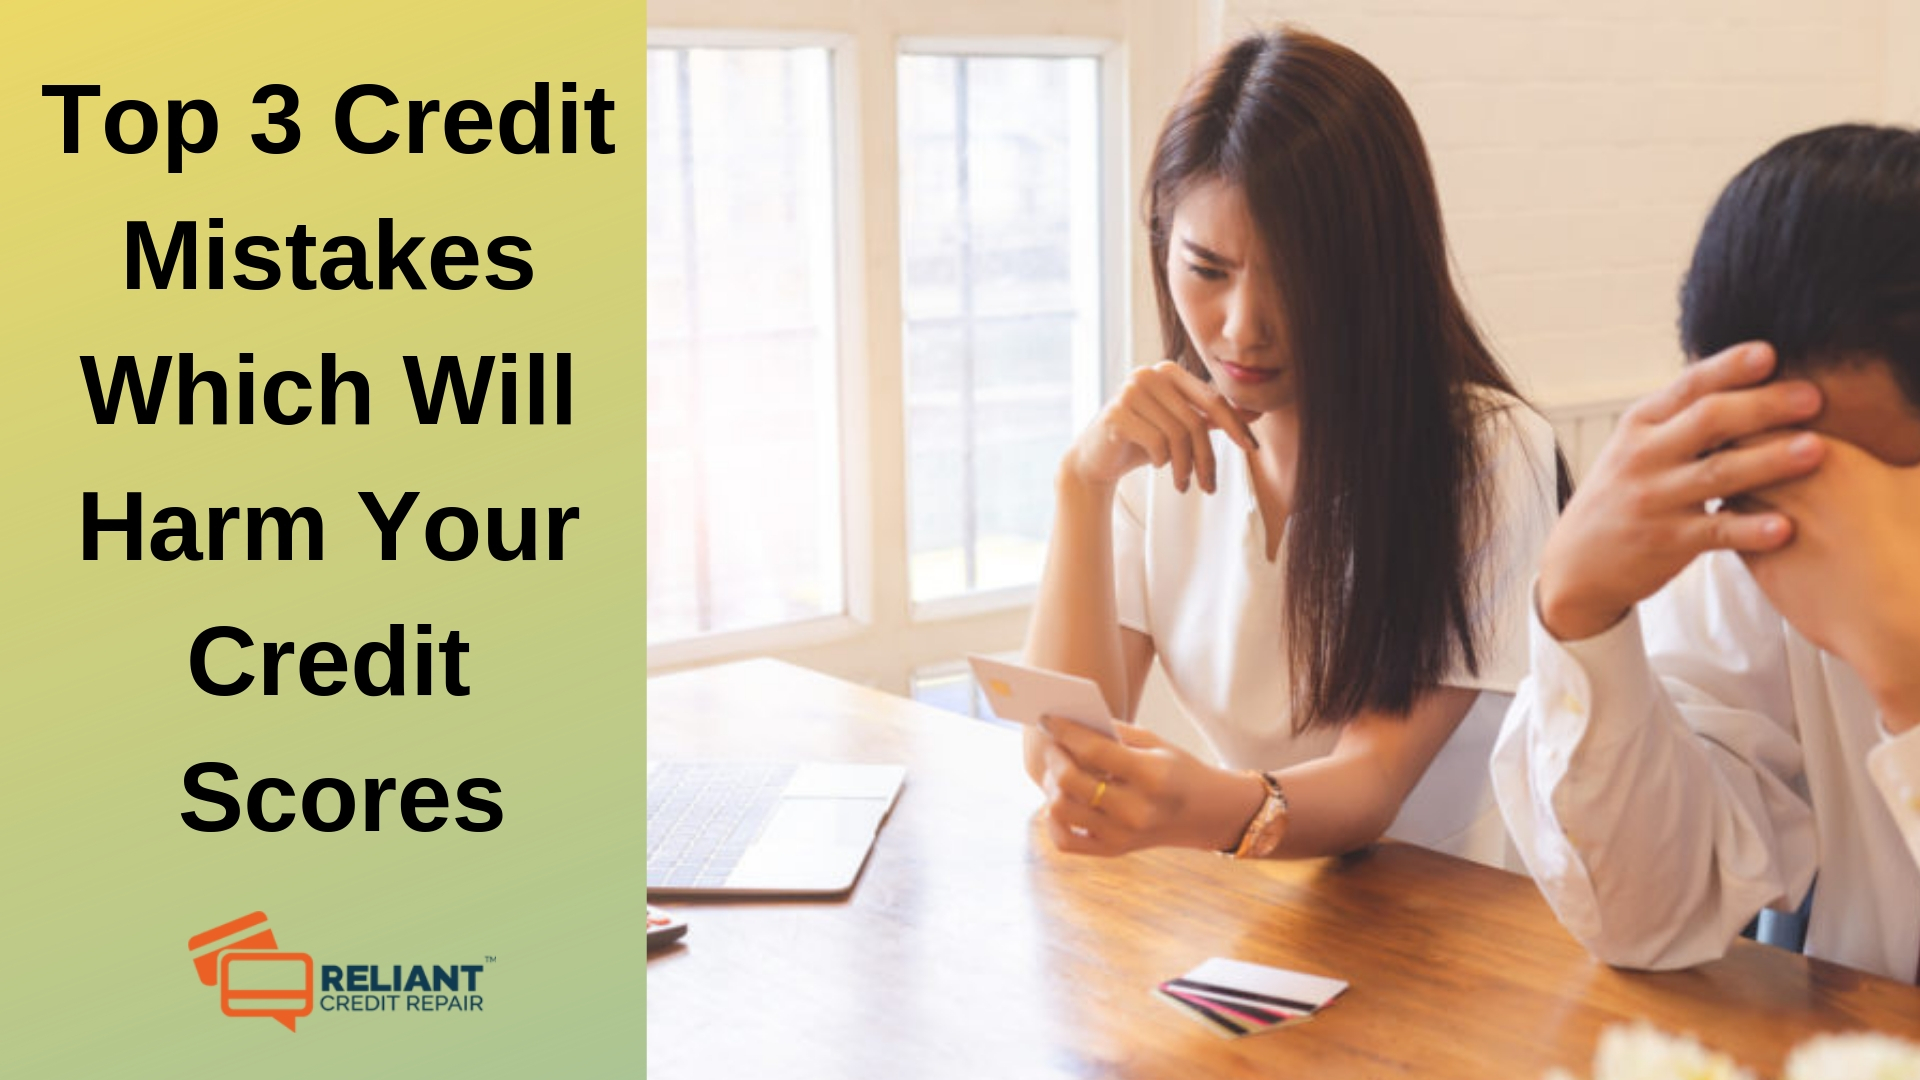 Top 3 Credit Mistakes Which Will Harm Your Credit Scores